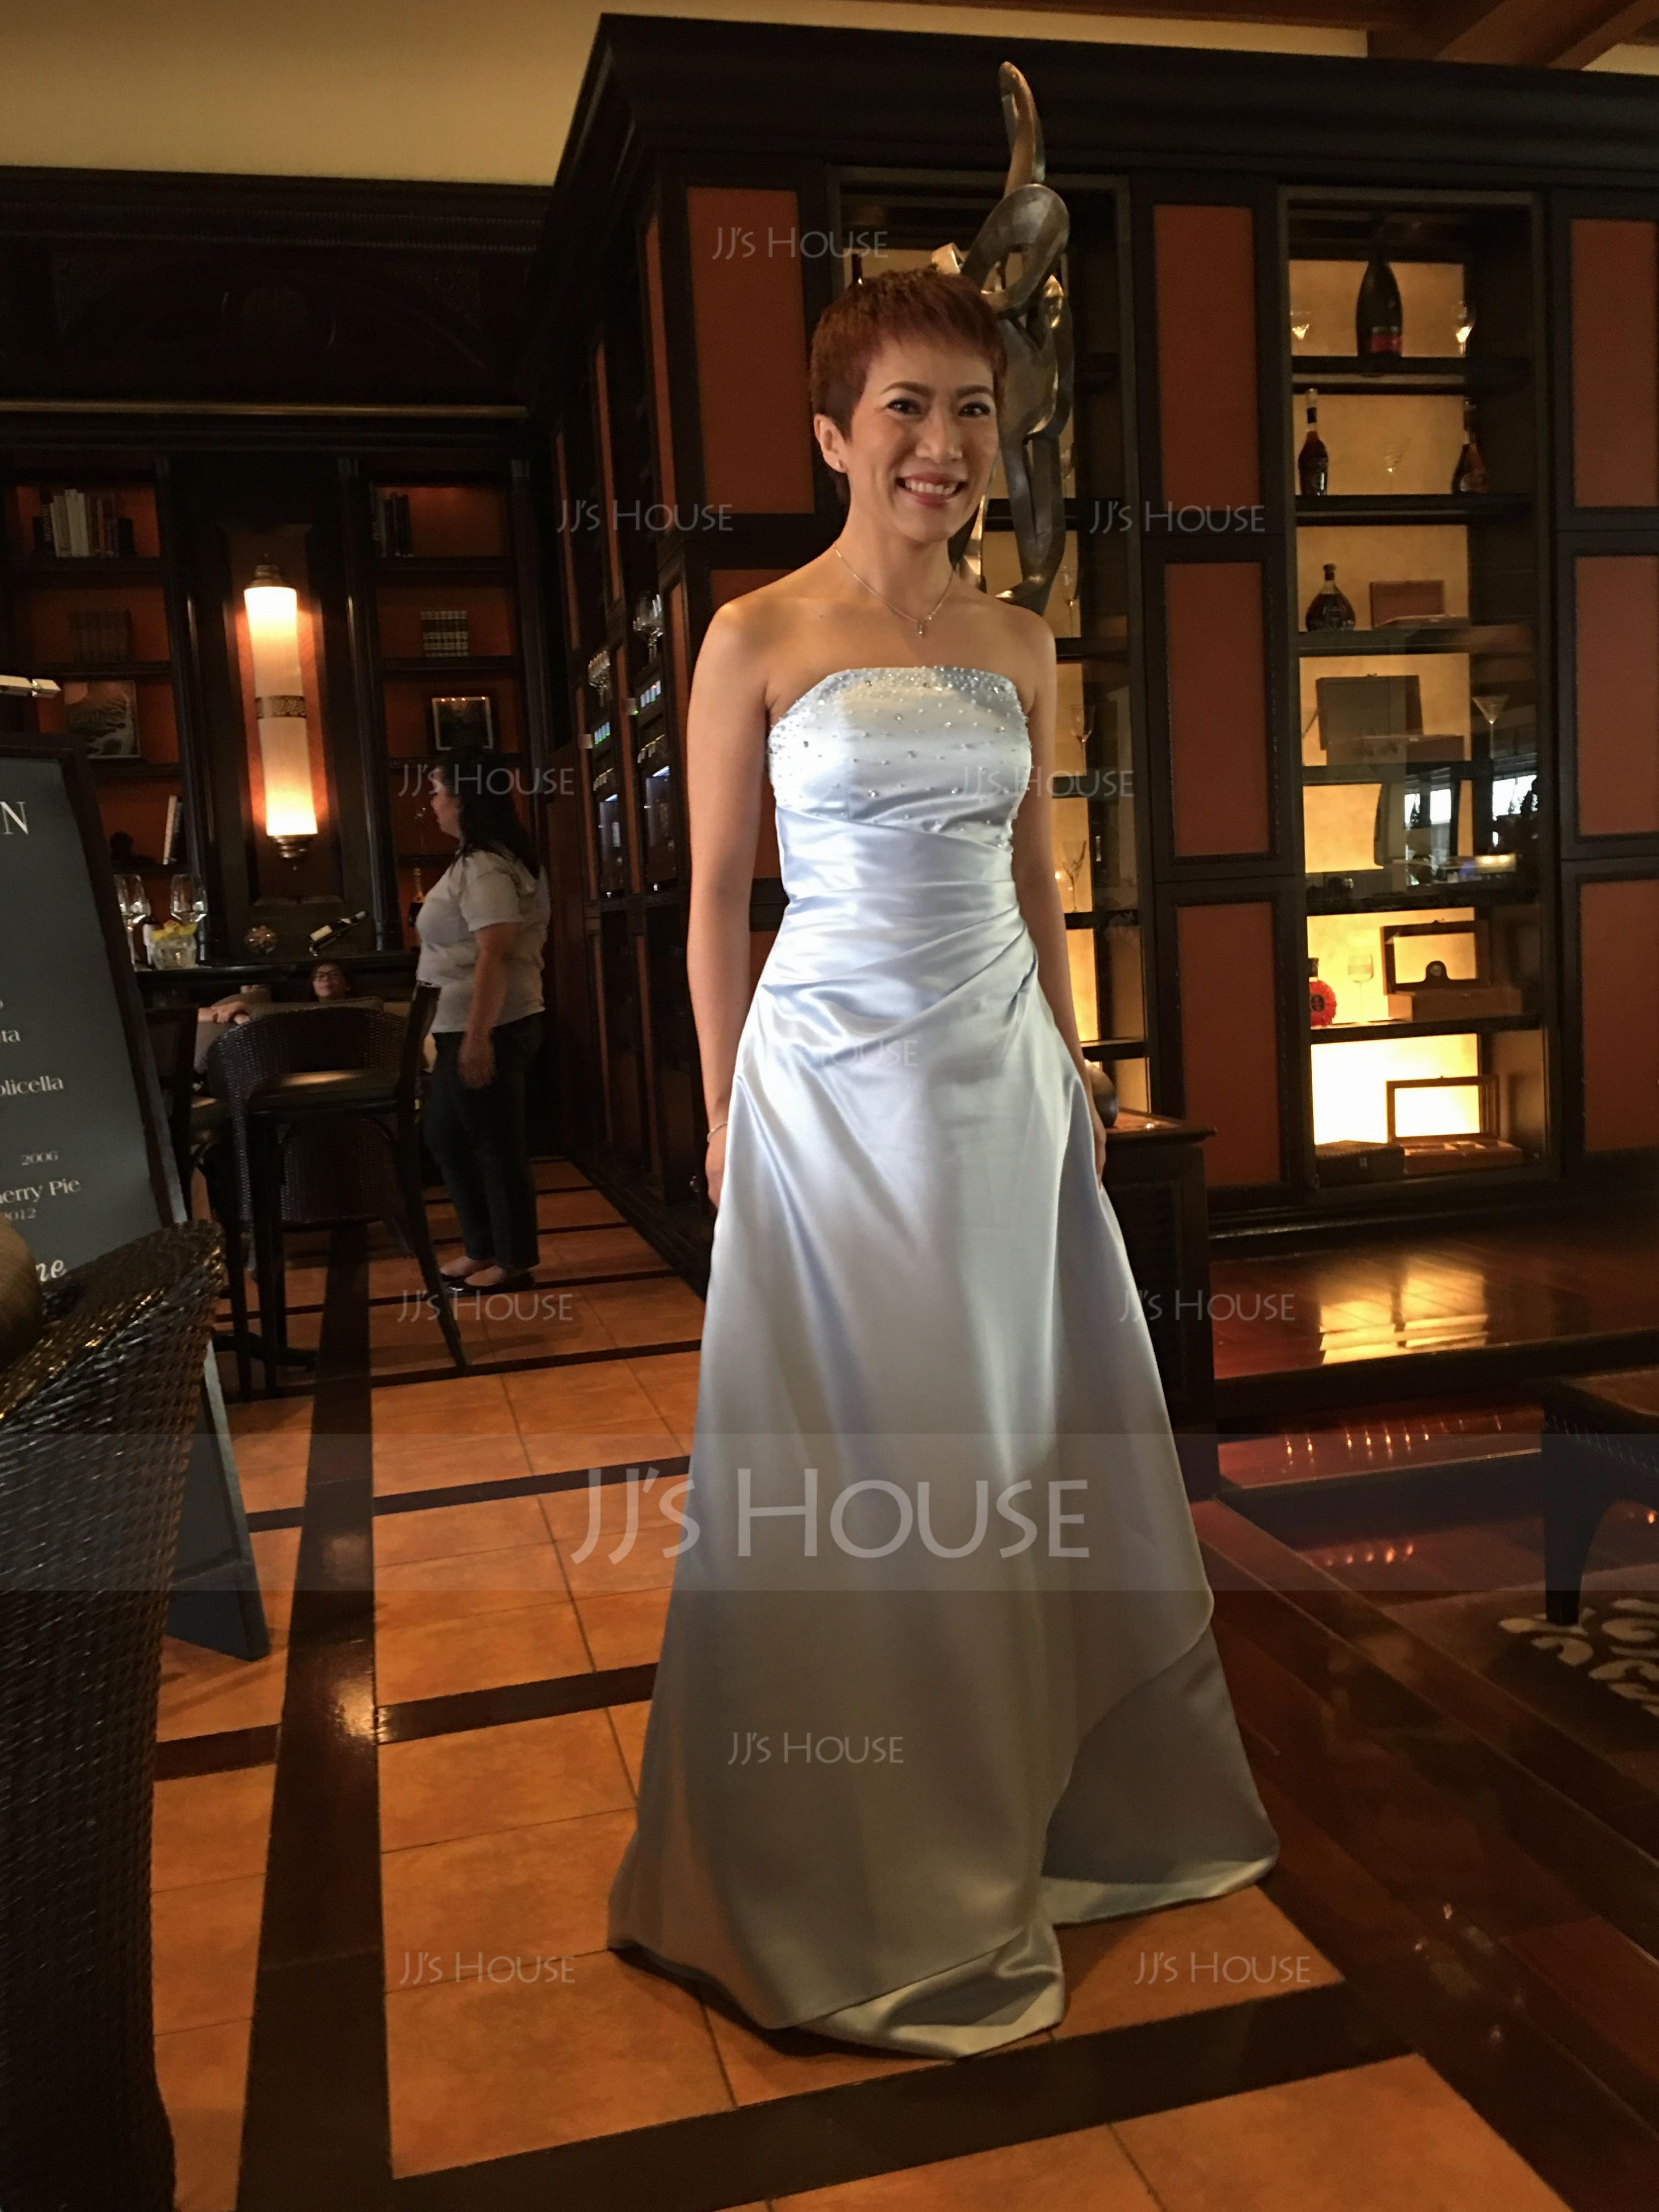 A-Line/Princess Strapless Floor-Length Satin Bridesmaid Dress With Ruffle Beading Sequins (007000982)